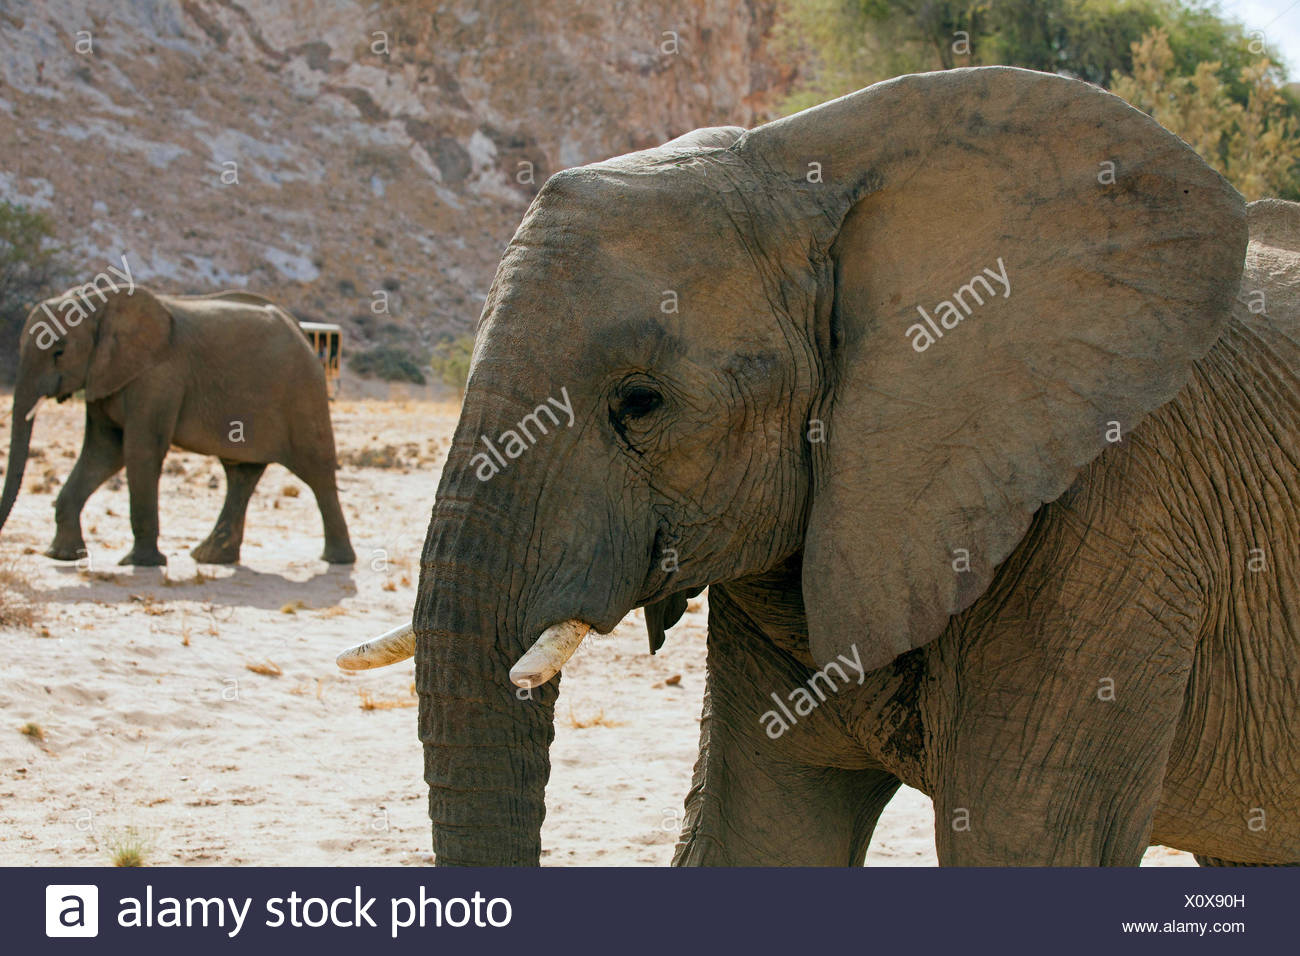 Desert elephant, Desert-dwelling elephant, African elephant (Loxodonta africana africana), desert elephants in dry river bed of the Huab, Namibia, Damaraland Stock Photo